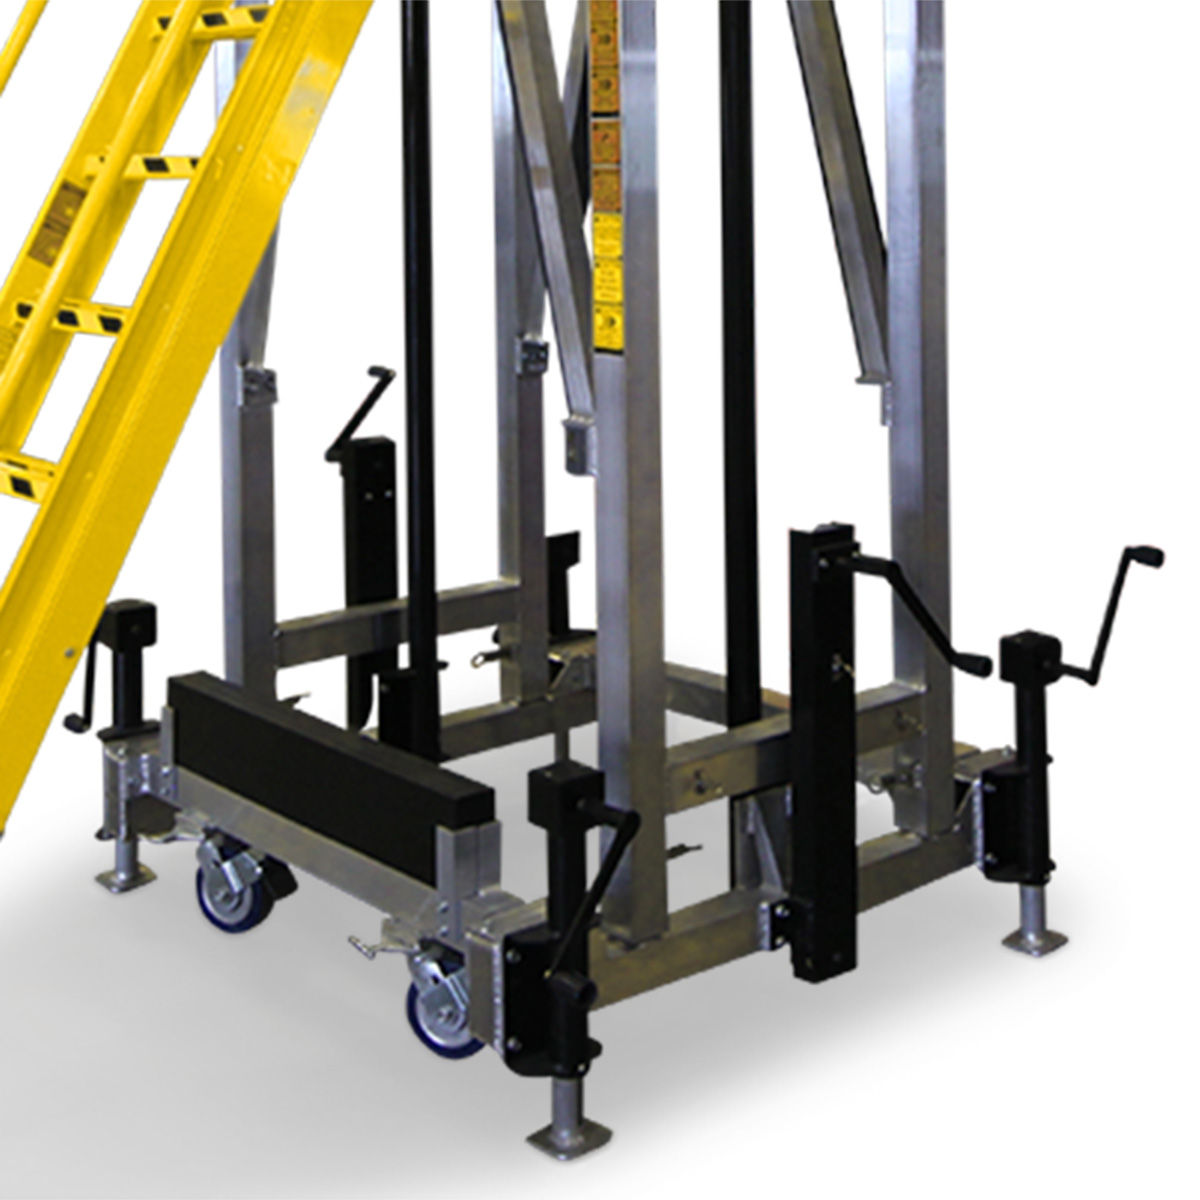 Floor leveling jacks, floor locks and electric lifting columns for OSHA compliant, mobile, height-adjustable work stands.